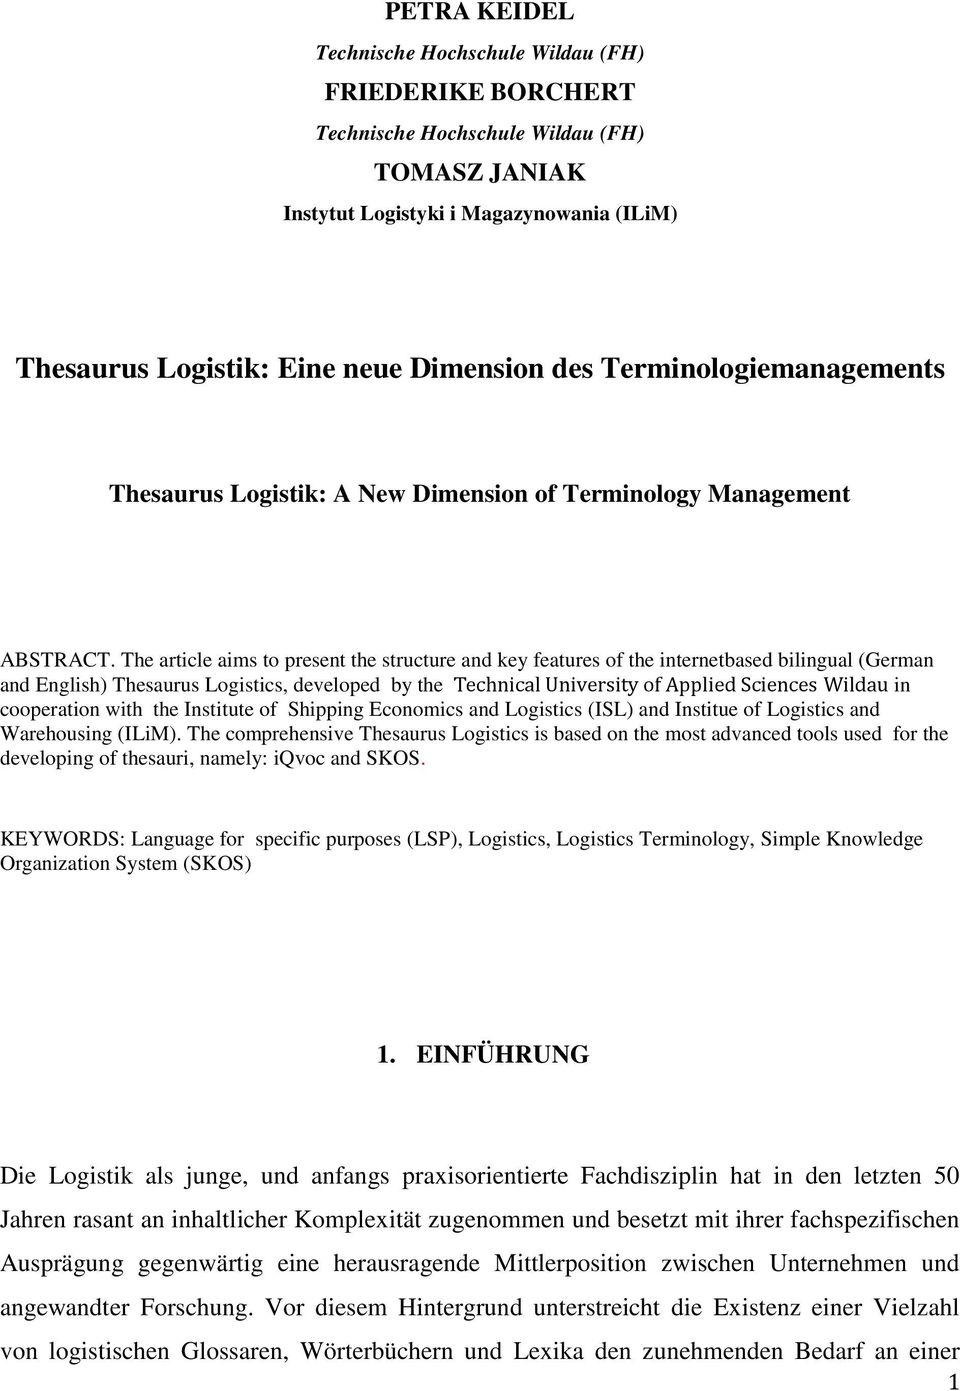 The article aims to present the structure and key features of the internetbased bilingual (German and English) Thesaurus Logistics, developed by the Technical University of Applied Sciences Wildau in